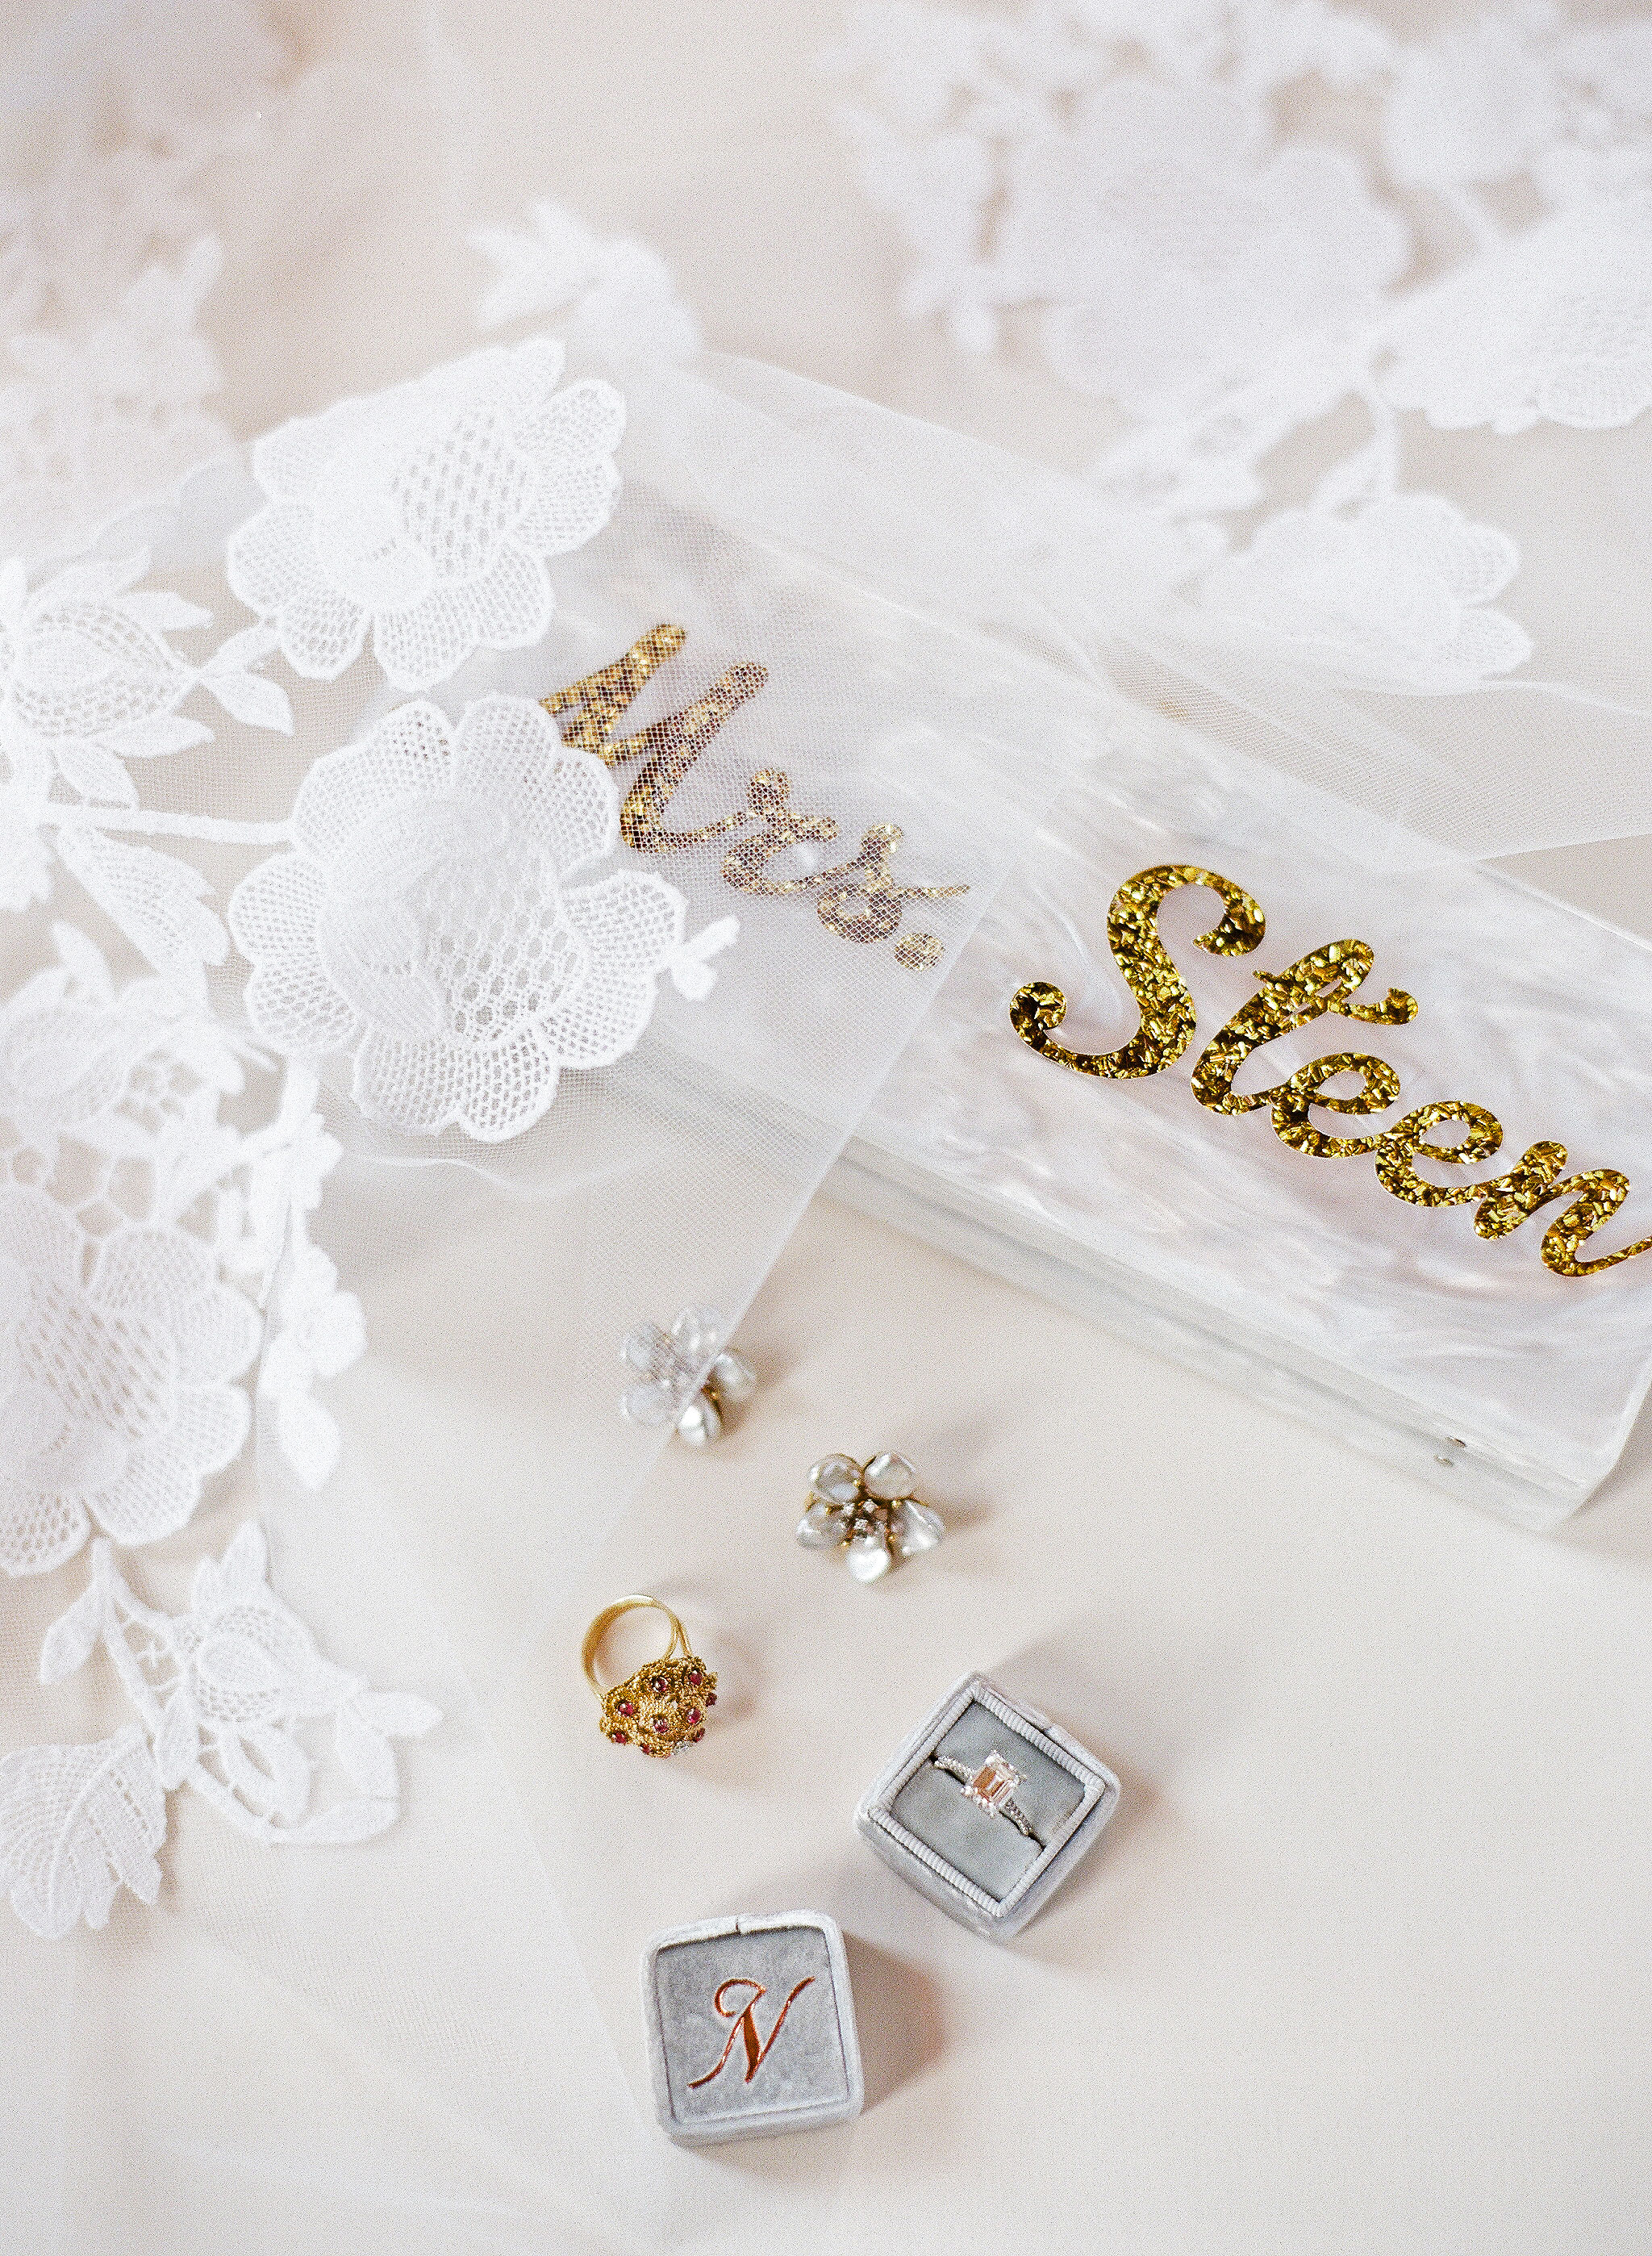 natalie jamey wedding clutch